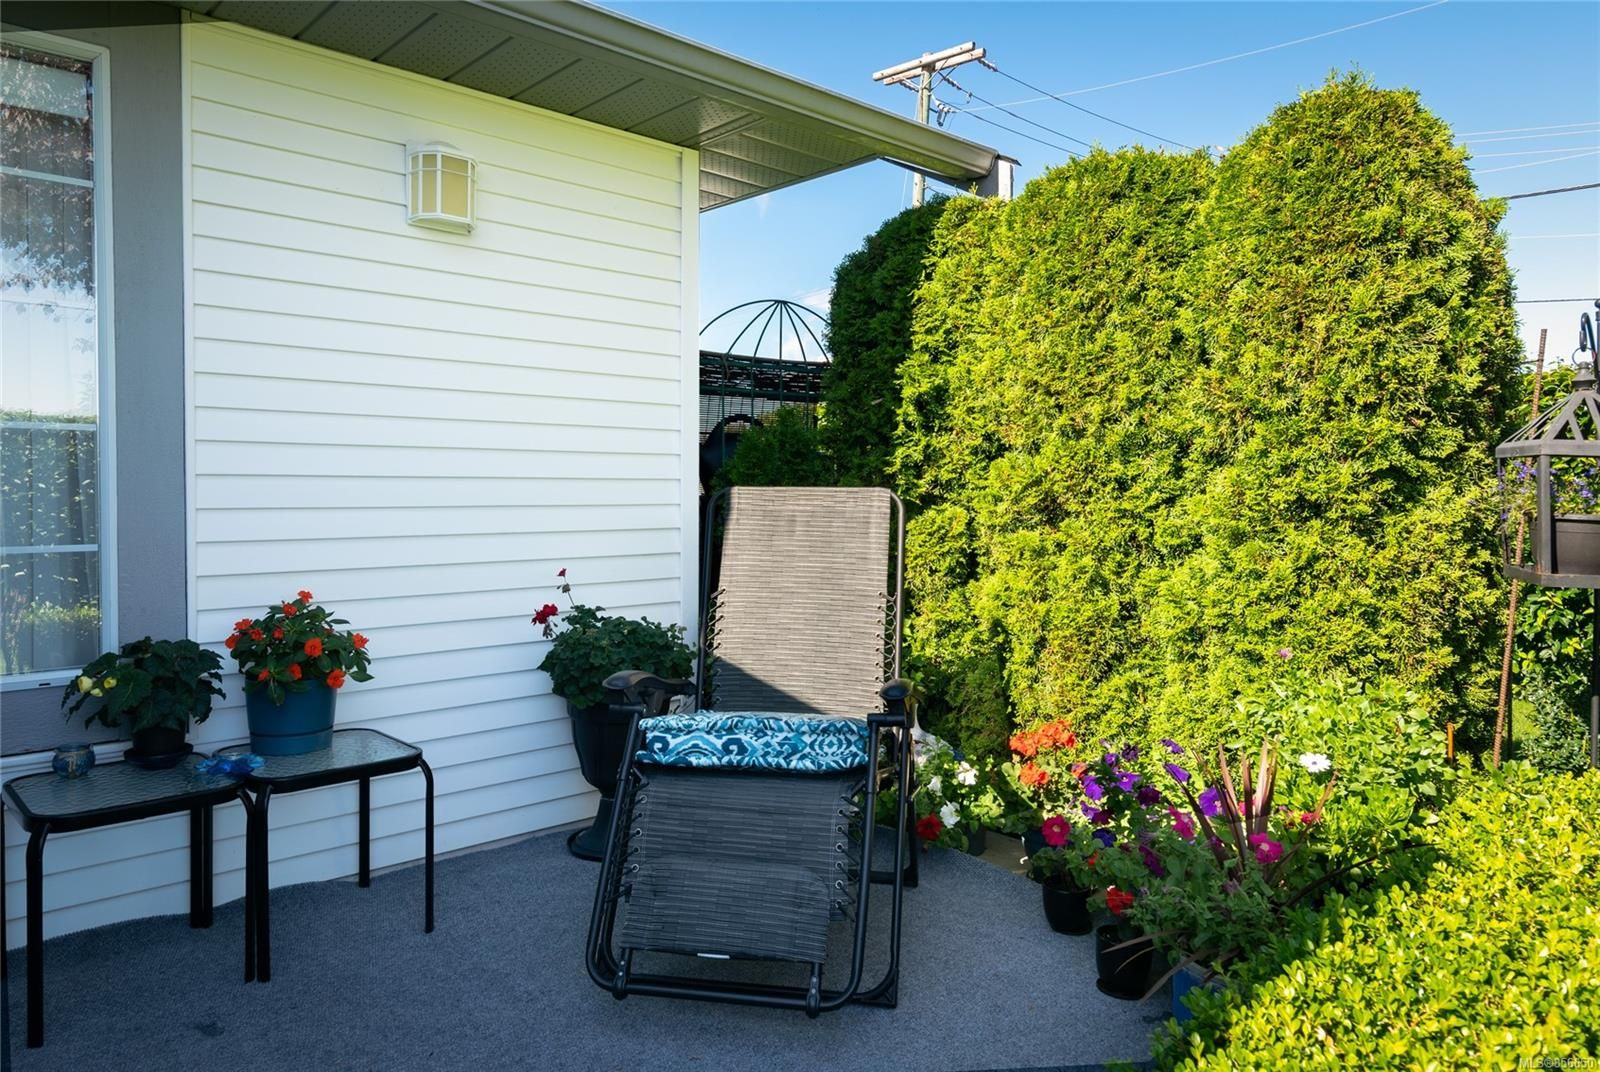 Photo 26: Photos: 4 305 Blower Rd in : PQ Parksville Row/Townhouse for sale (Parksville/Qualicum)  : MLS®# 856650